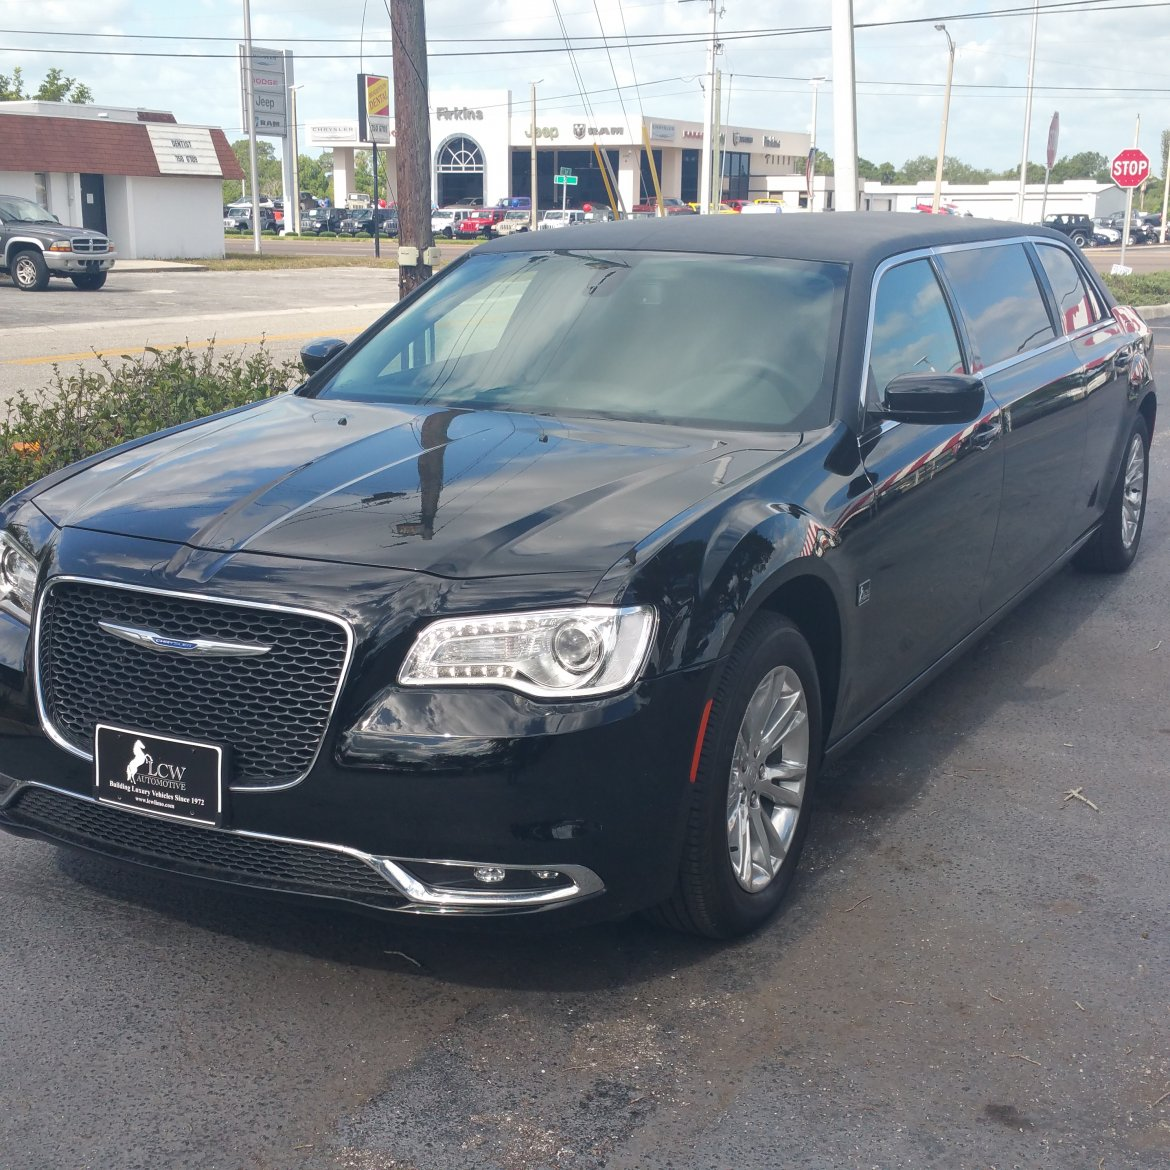 limousine for sale 2017 chrysler 300 in bradenton fl 10513 we sell limos. Cars Review. Best American Auto & Cars Review